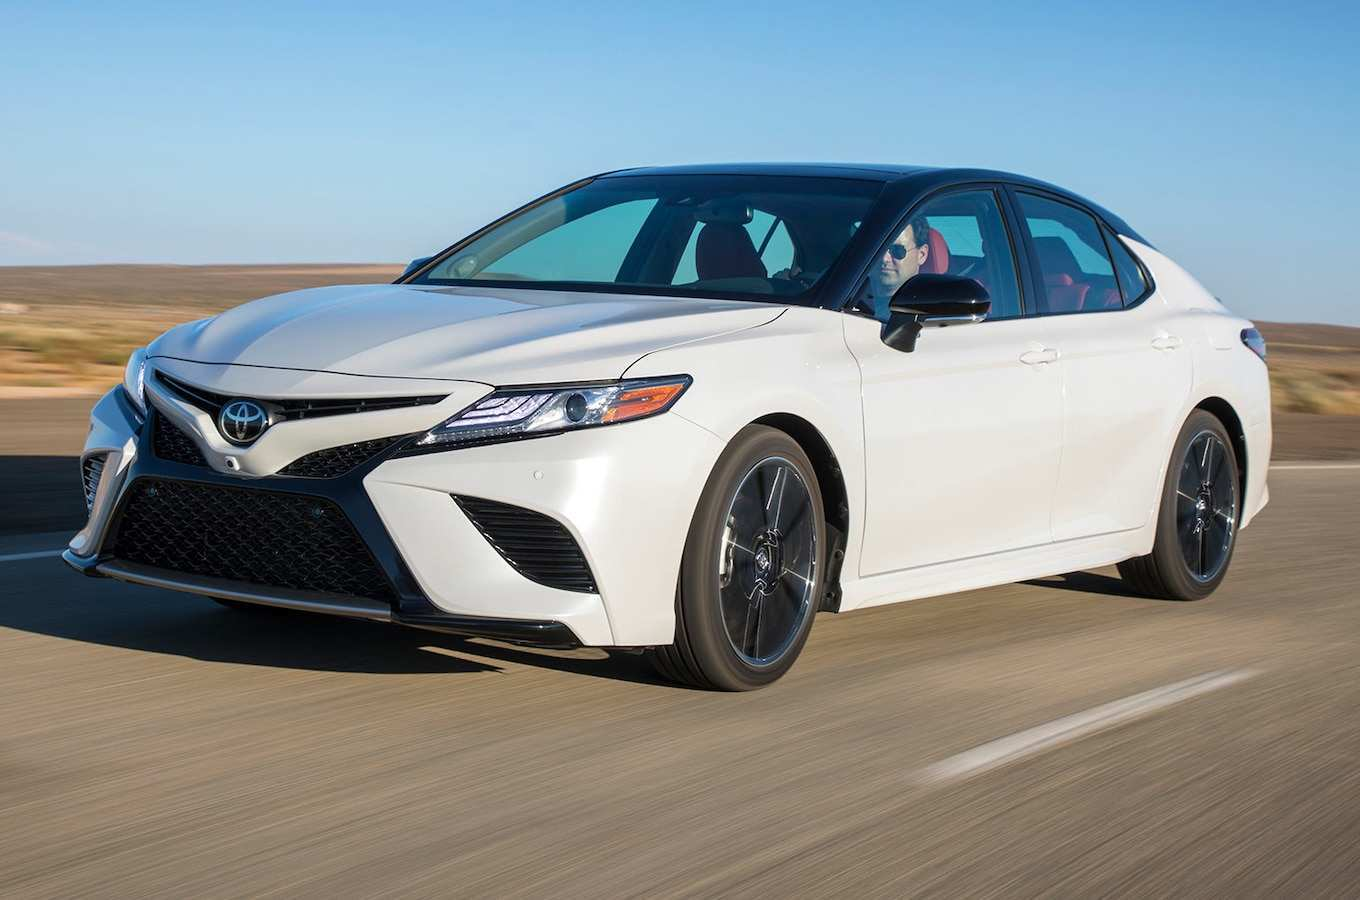 25 All New Best 2019 Toyota Camry Xle V6 Review And Price First Drive with Best 2019 Toyota Camry Xle V6 Review And Price